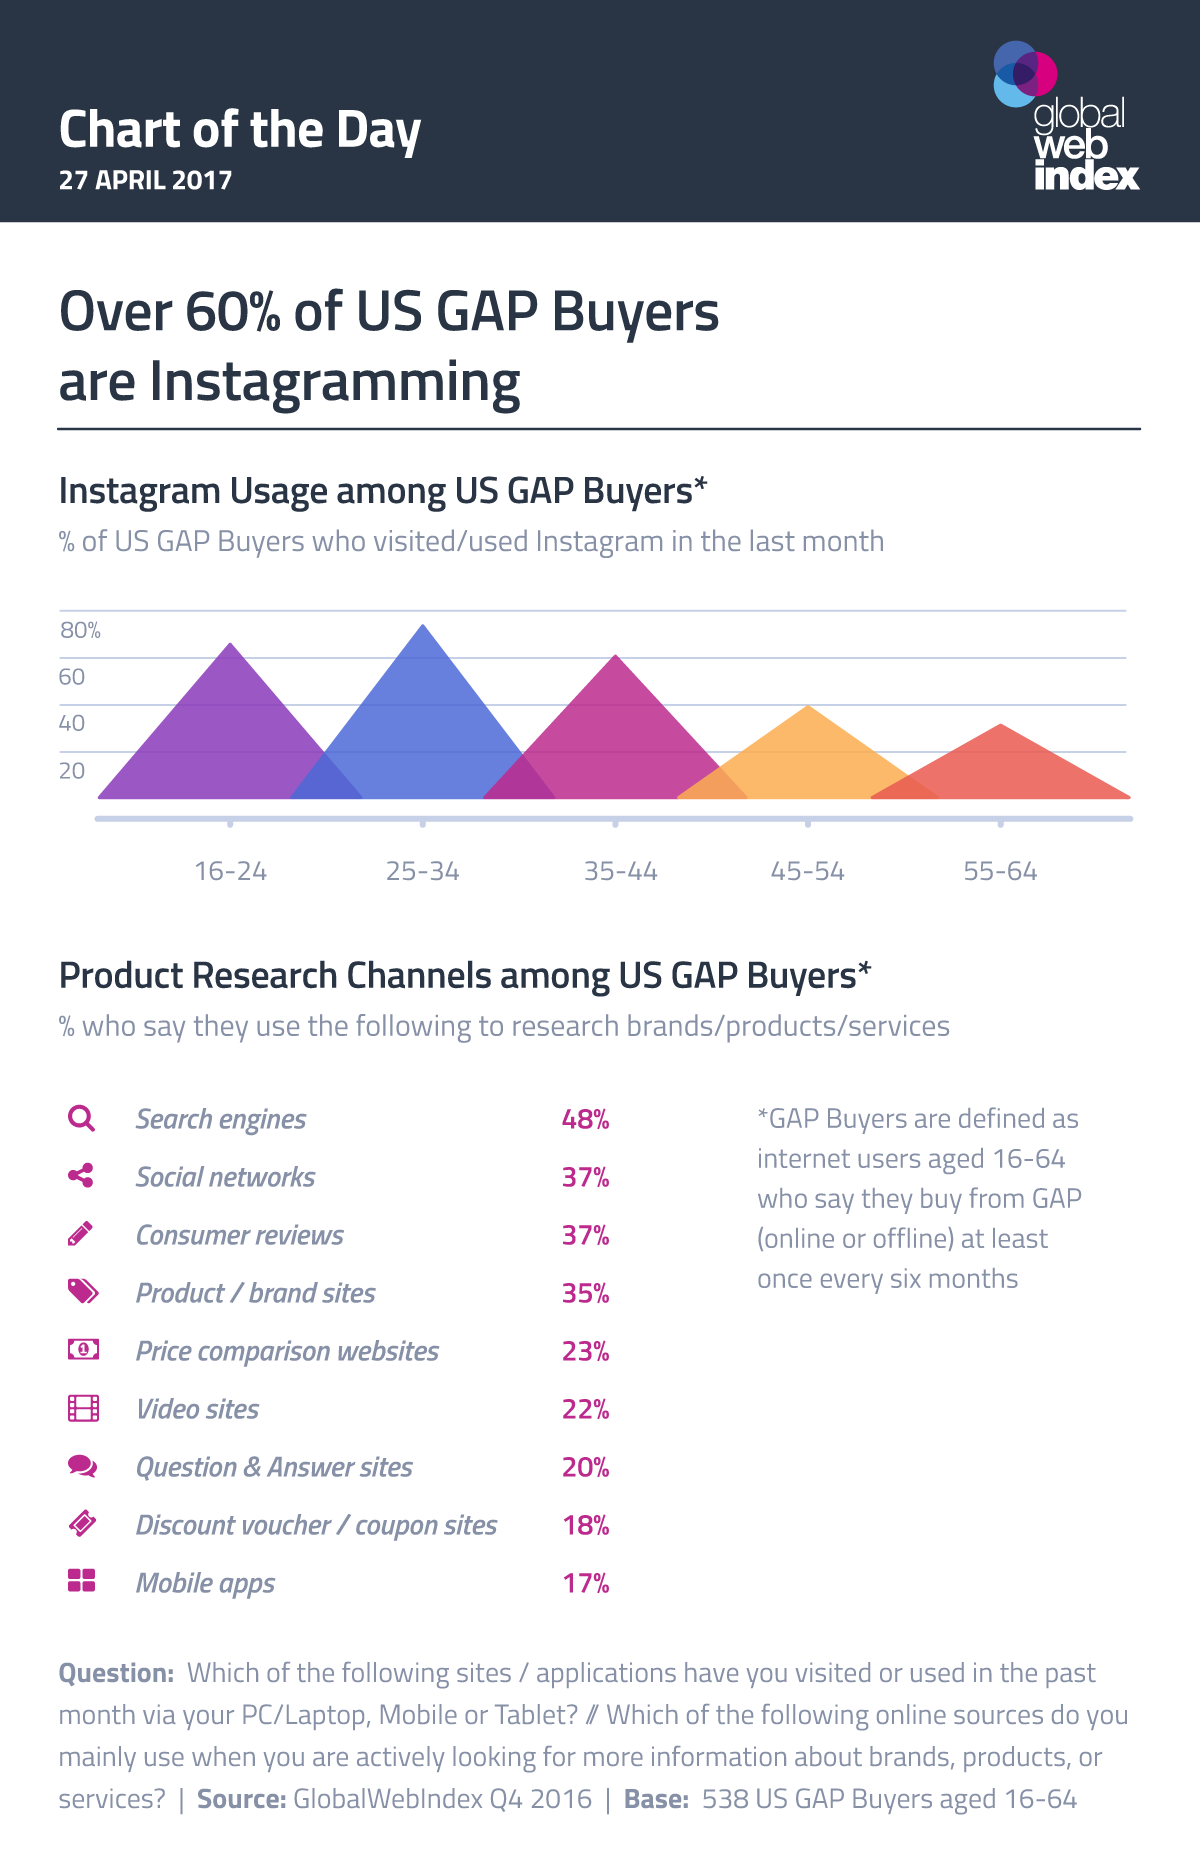 Over 60% of US GAP Buyers are Instagramming